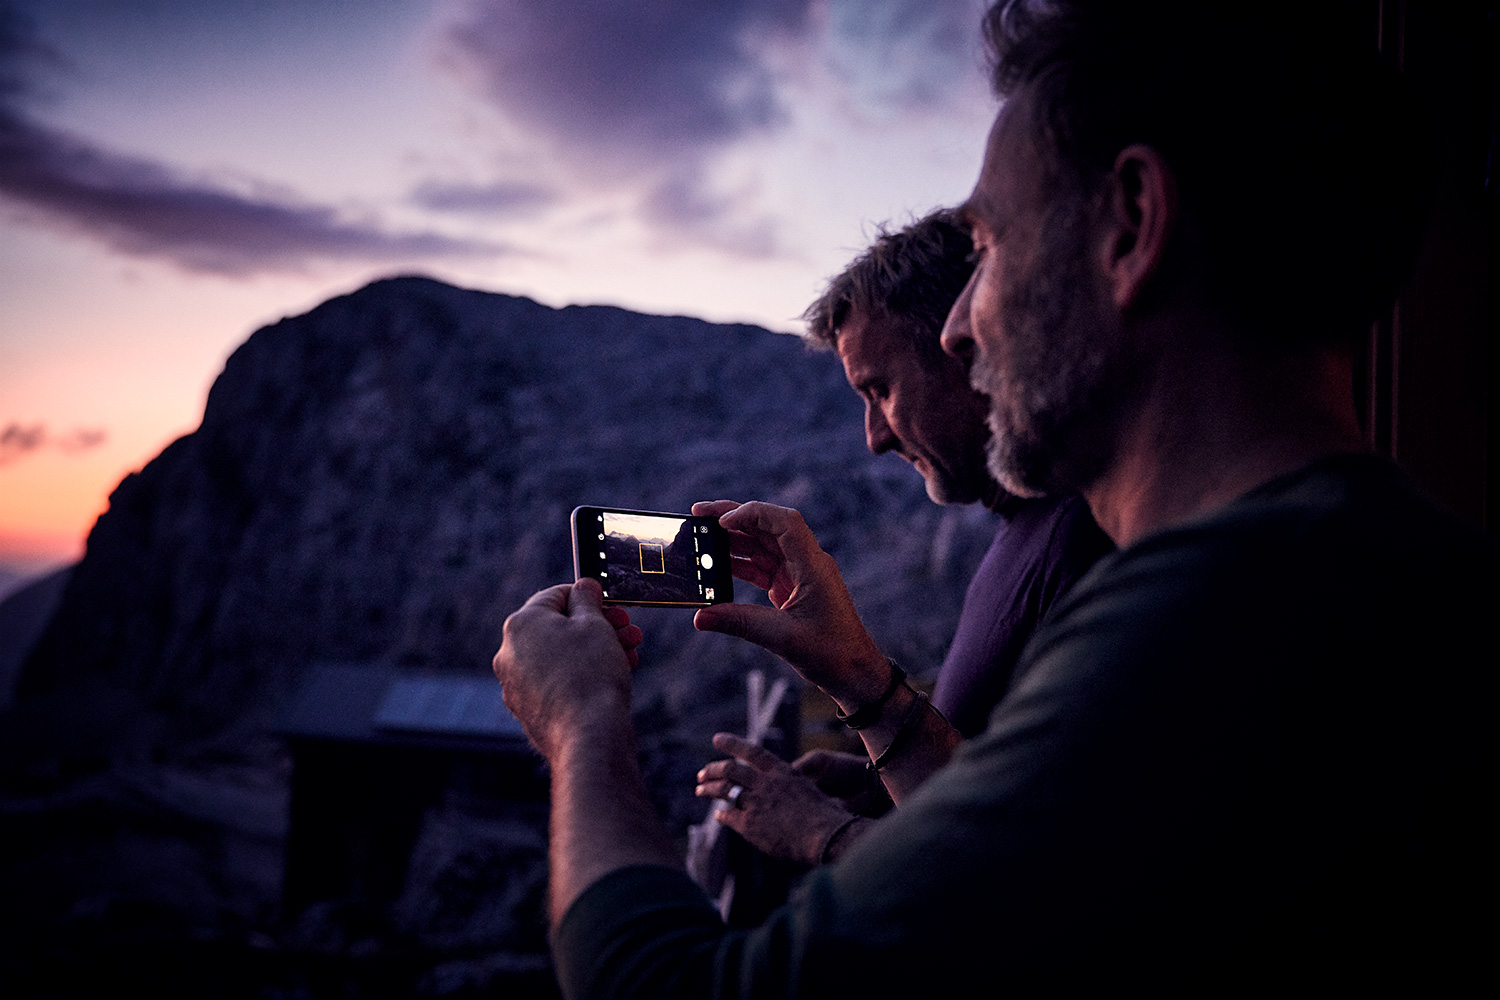 WALDEN Magazin Founders Harald Willenbrock and Markus Wolff enjoying the sunset ontop of the mountain on their first mountaineering tour